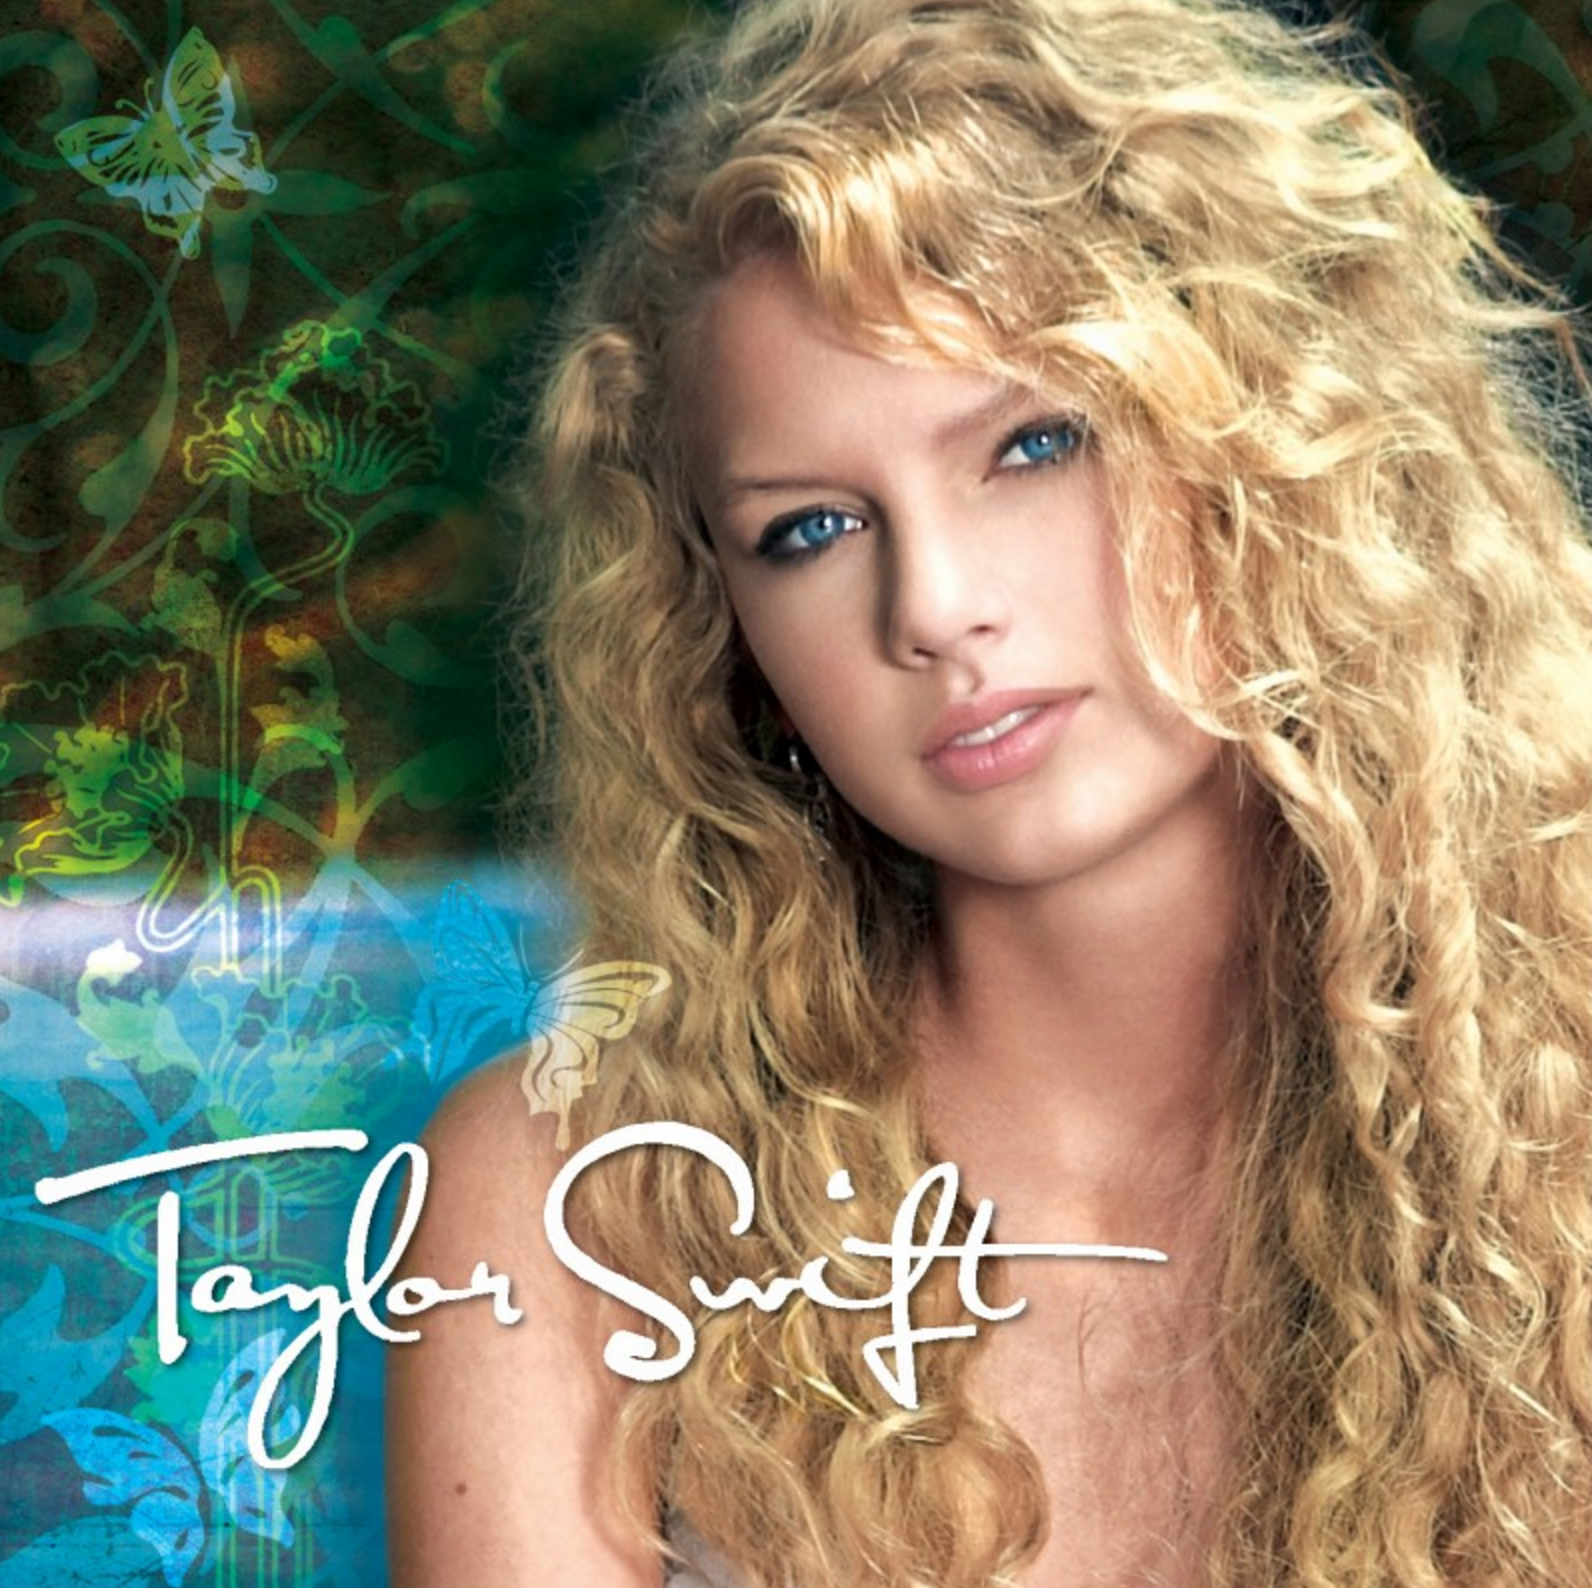 Taylor Swift by Taylor Swift (Big Machine Records, 2006)